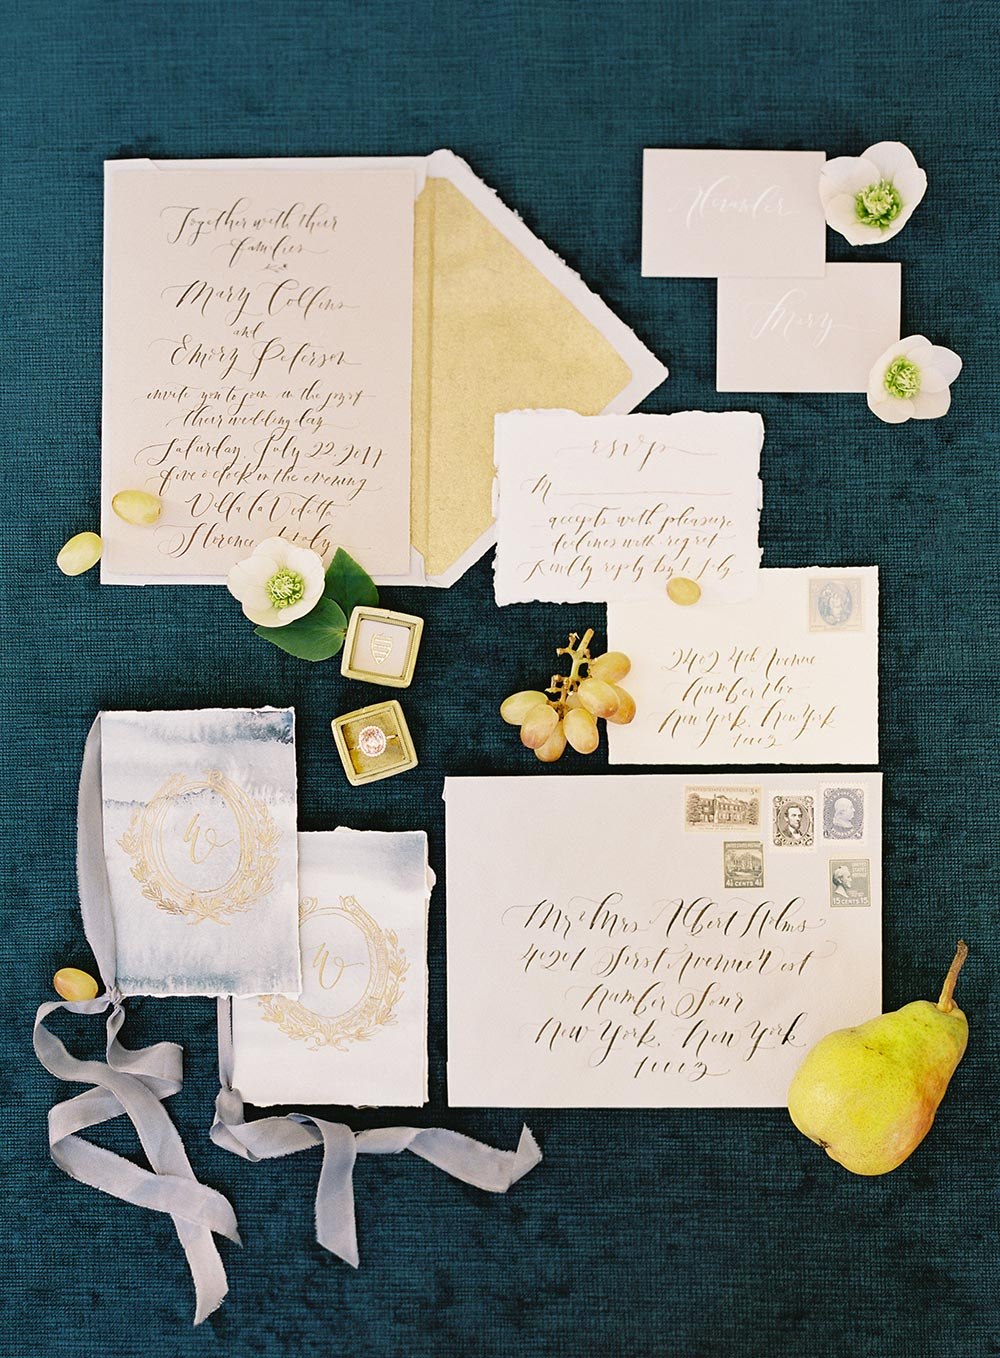 fine art wedding paper goods with handwritten calligraphy and silk ribbons